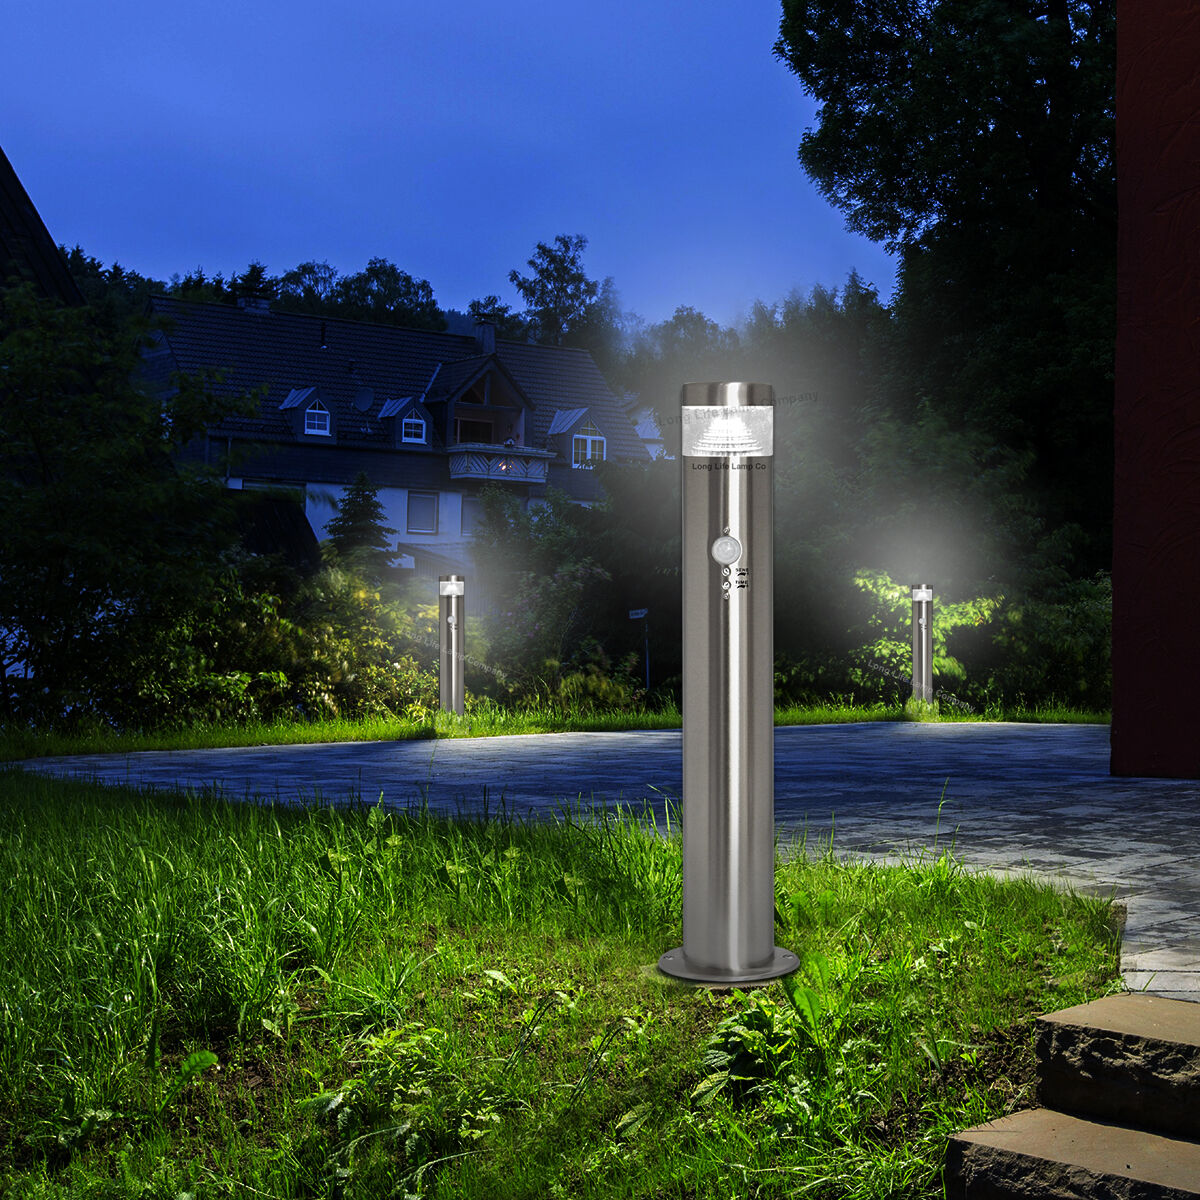 Details About Pir Led Bollard Garden Lamp Post Stainless Steel Outdoor Motion Sensor Light